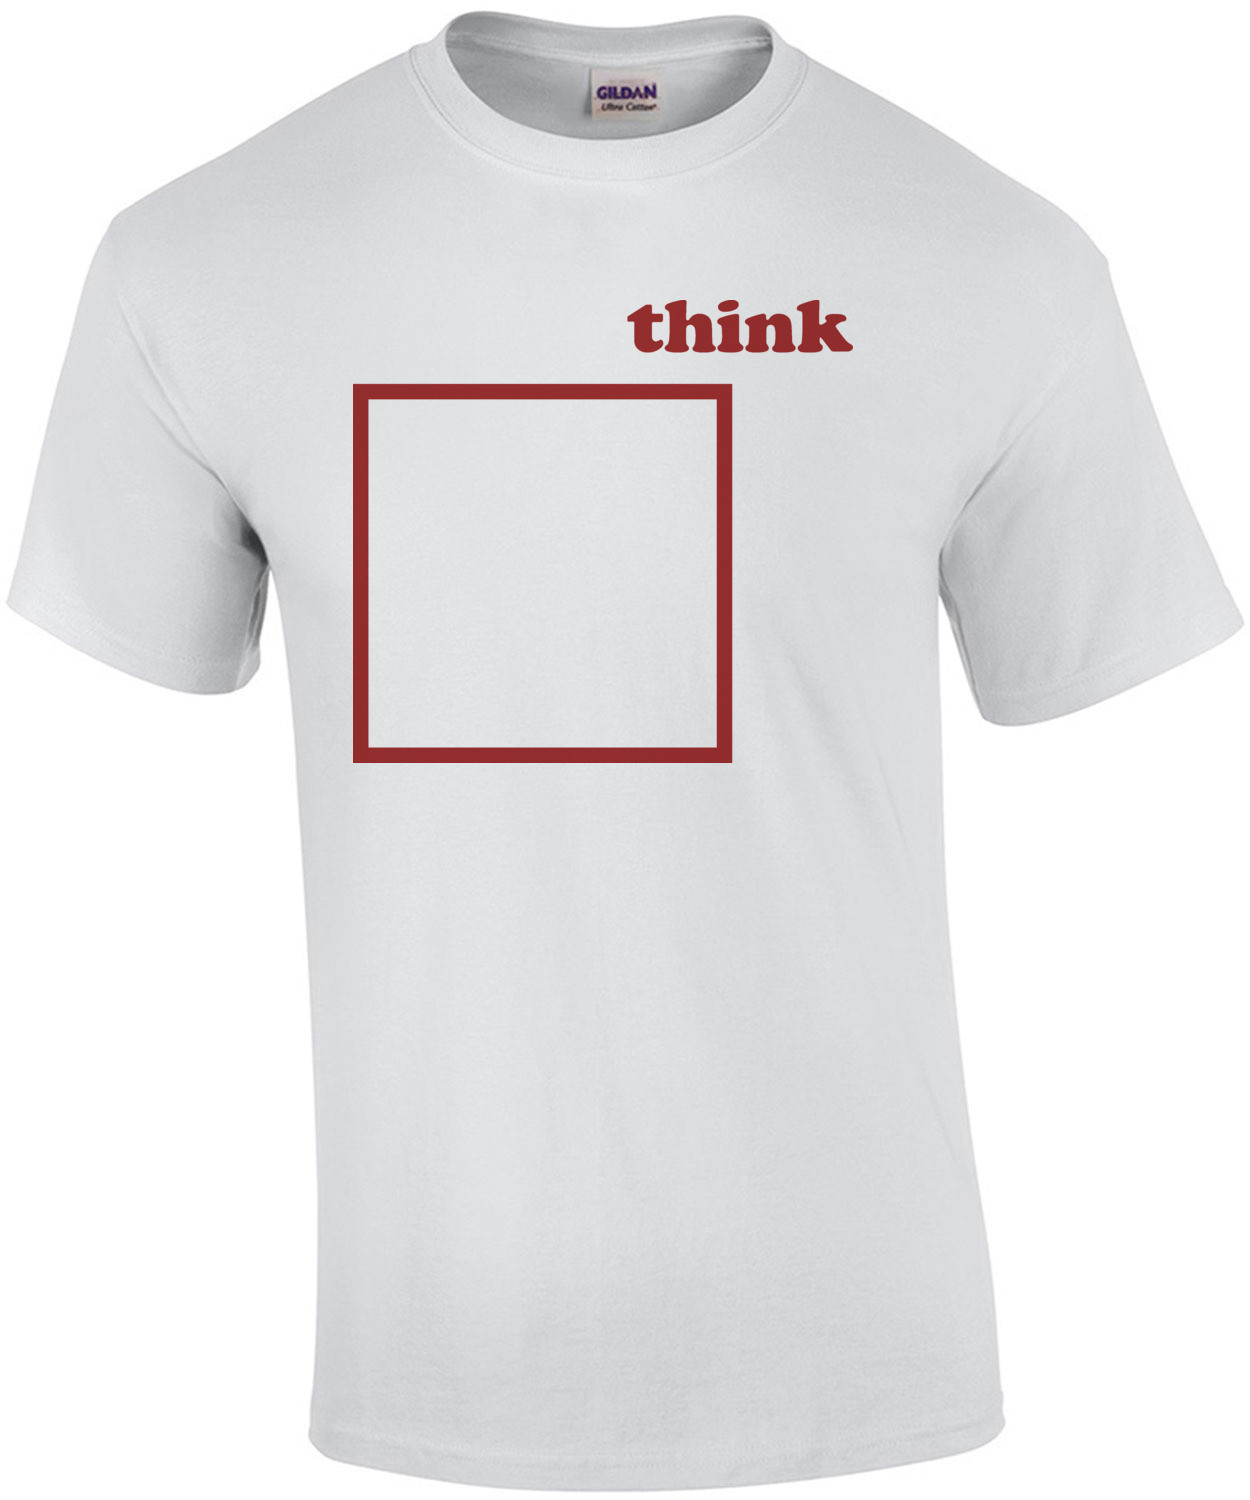 Think outside the box - Funny T-Shirt